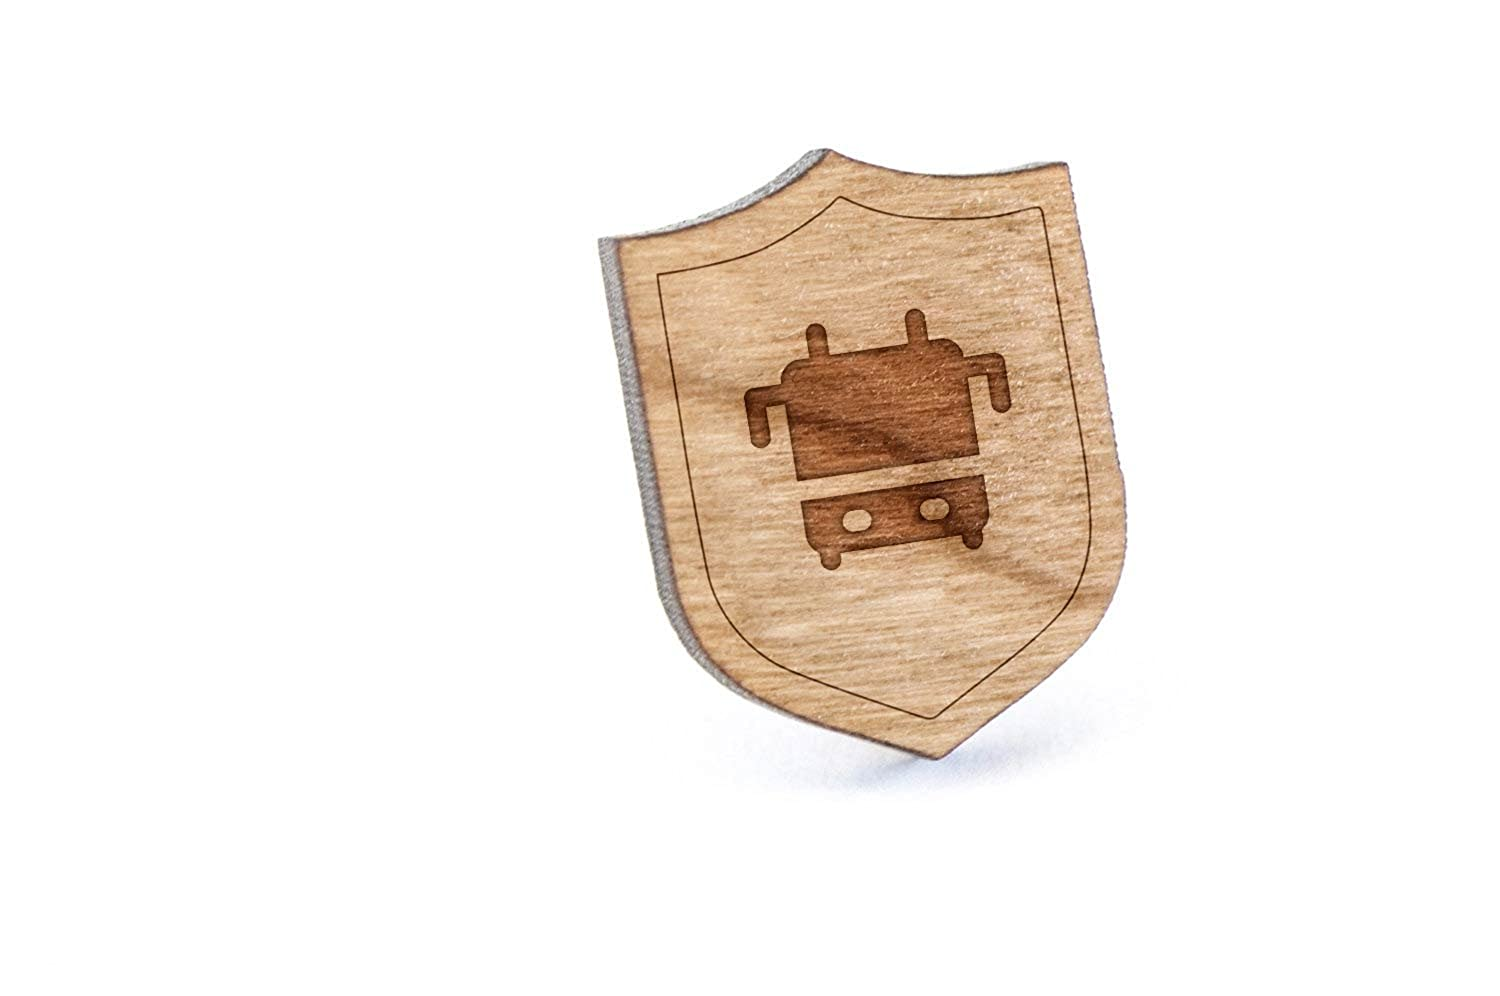 Tour Bus Lapel Pin, Wooden Pin And Tie Tack   Rustic And Minimalistic Groomsmen Gifts And Wedding Accessories